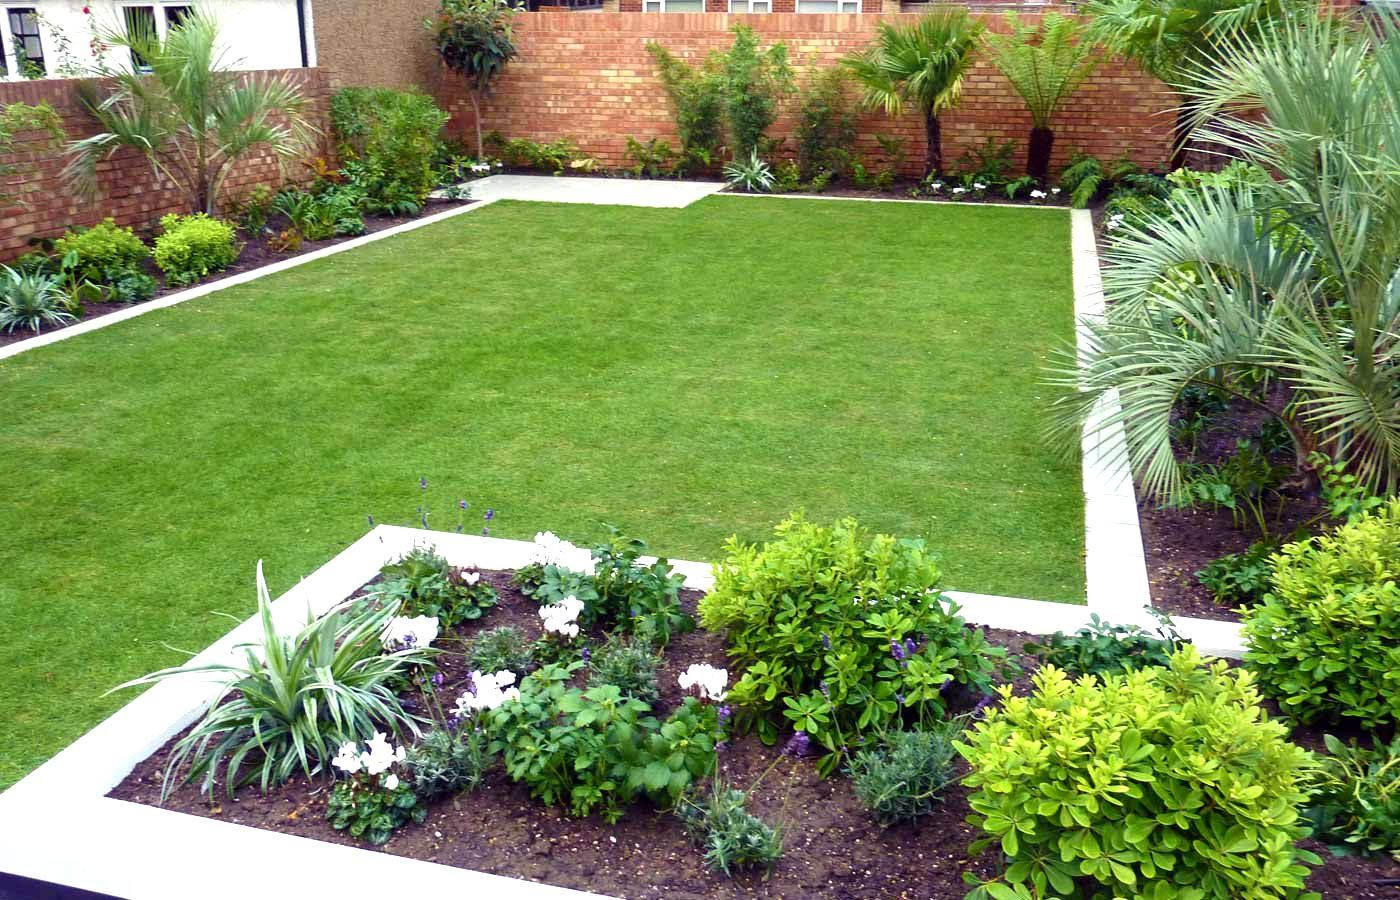 Simple garden designs no fret small garden design for Small landscape ideas